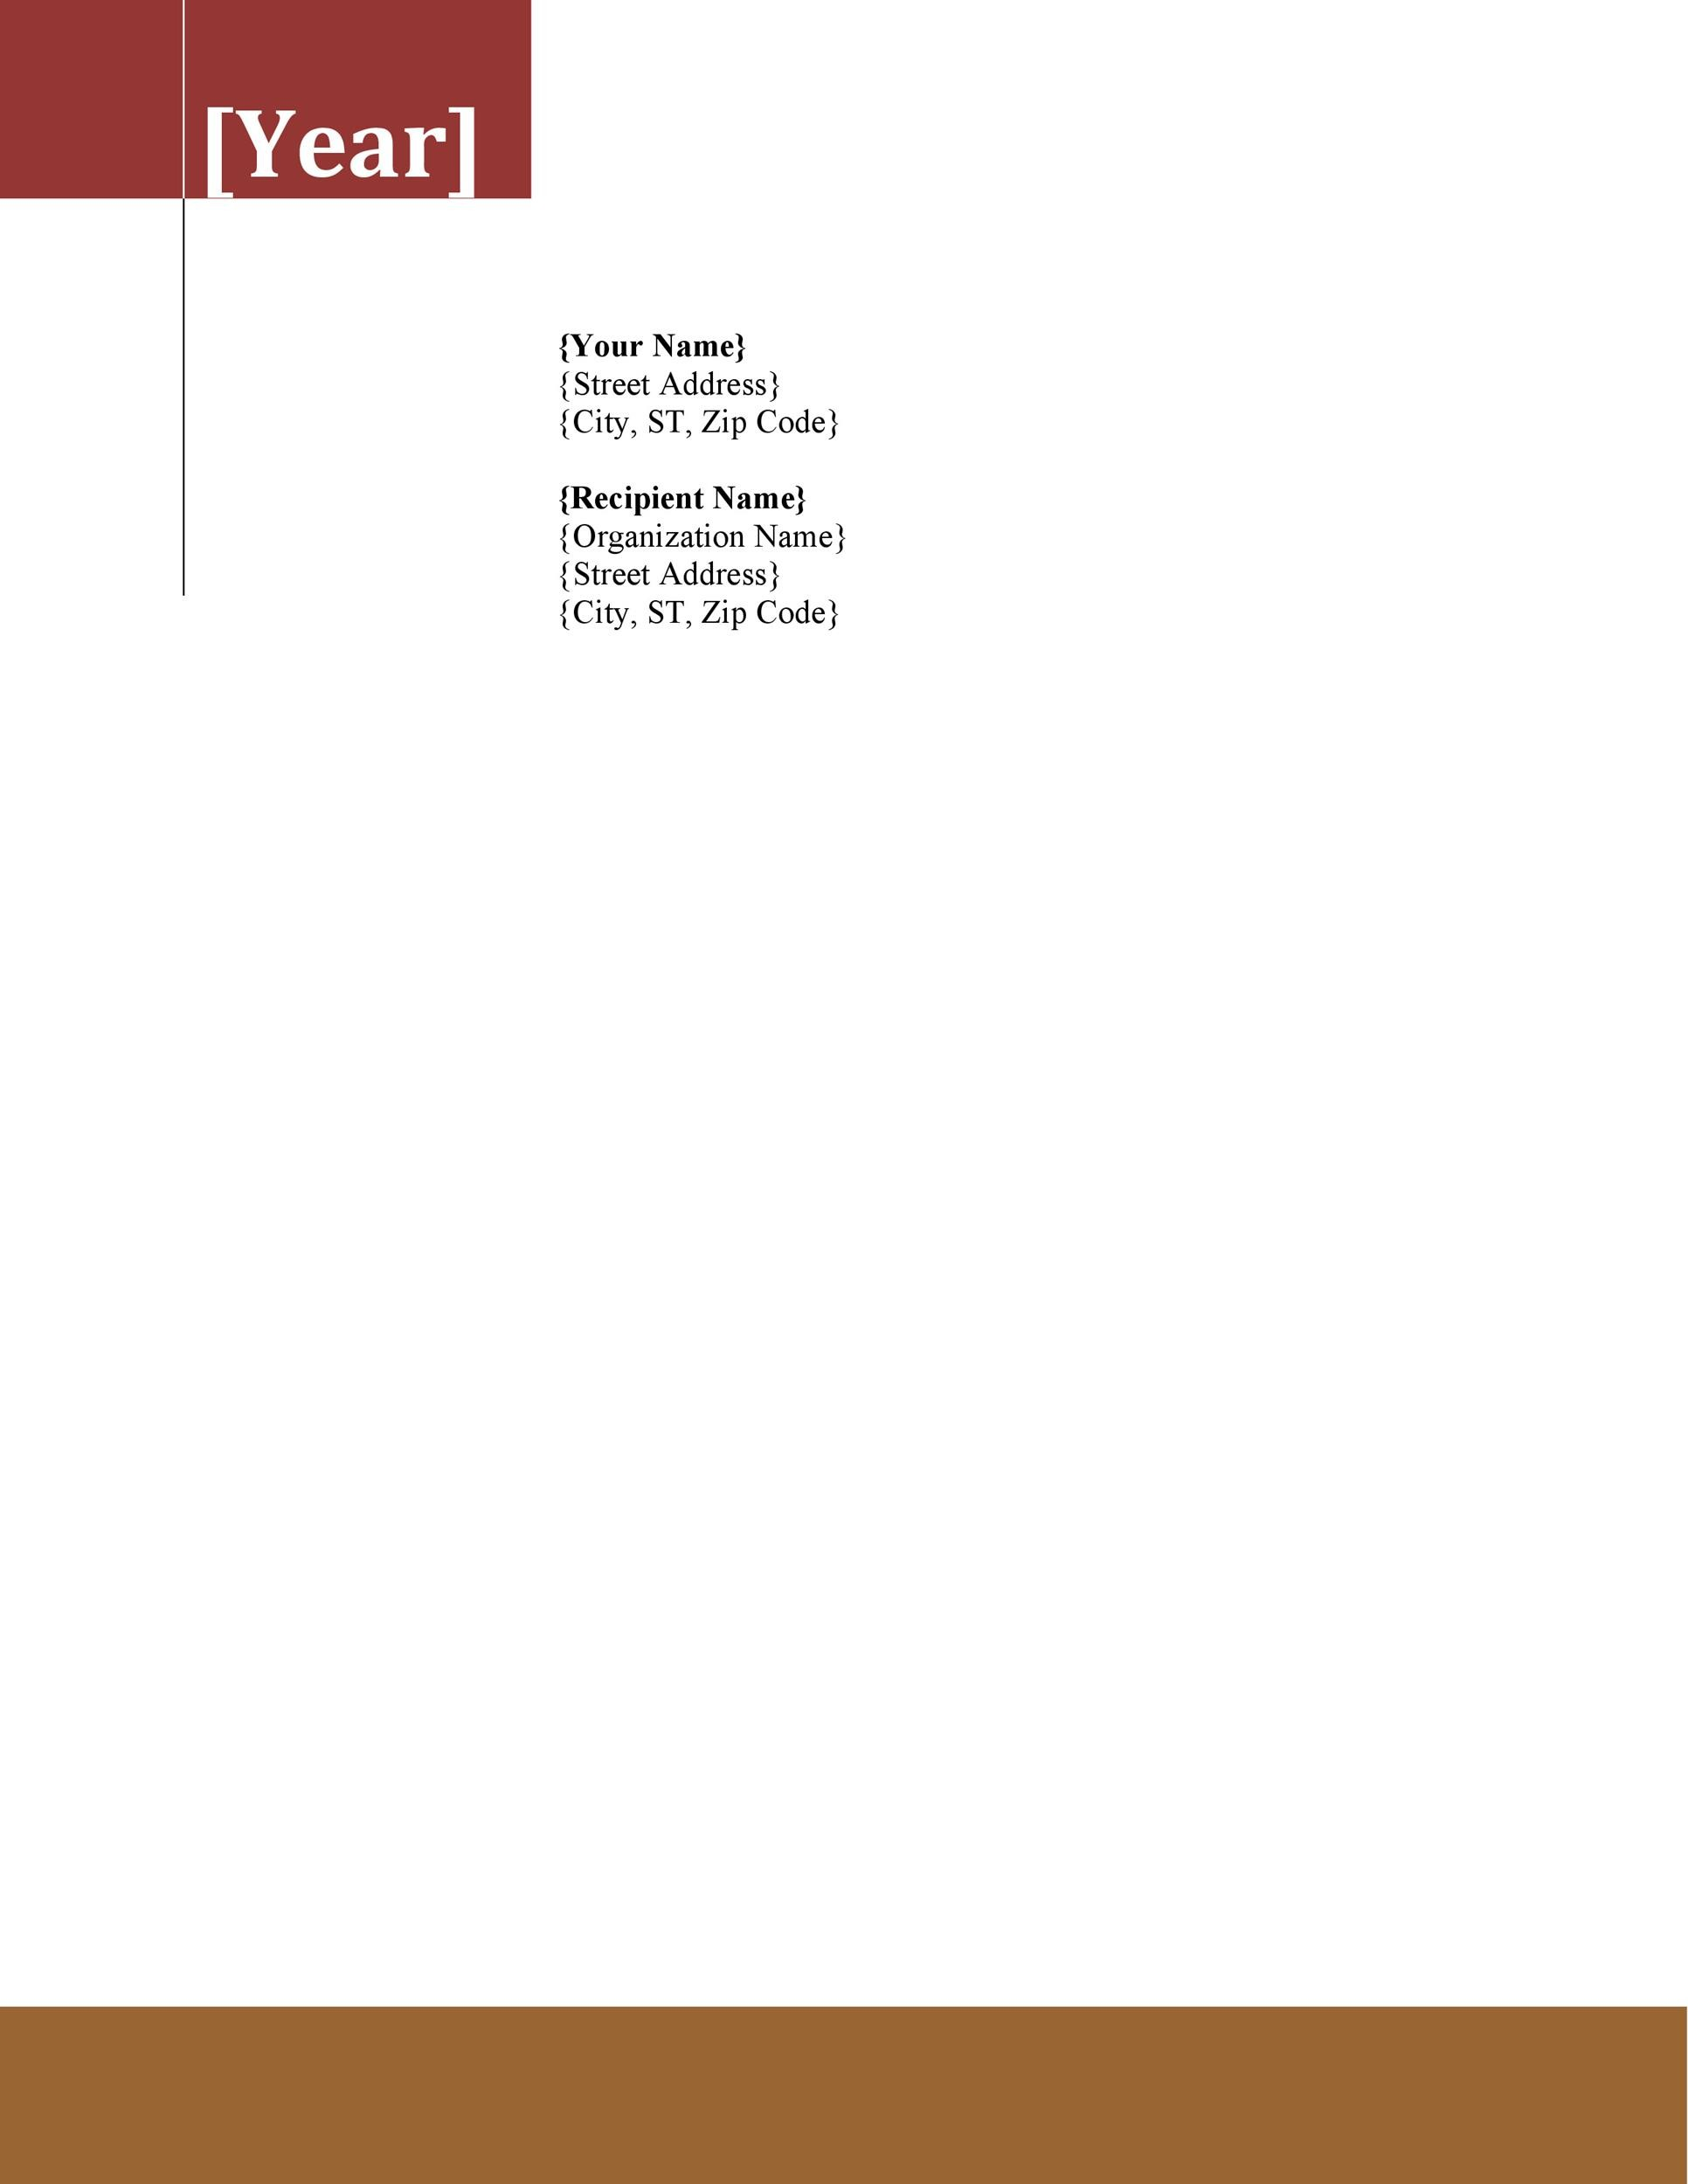 Catering Services Letterhead Template